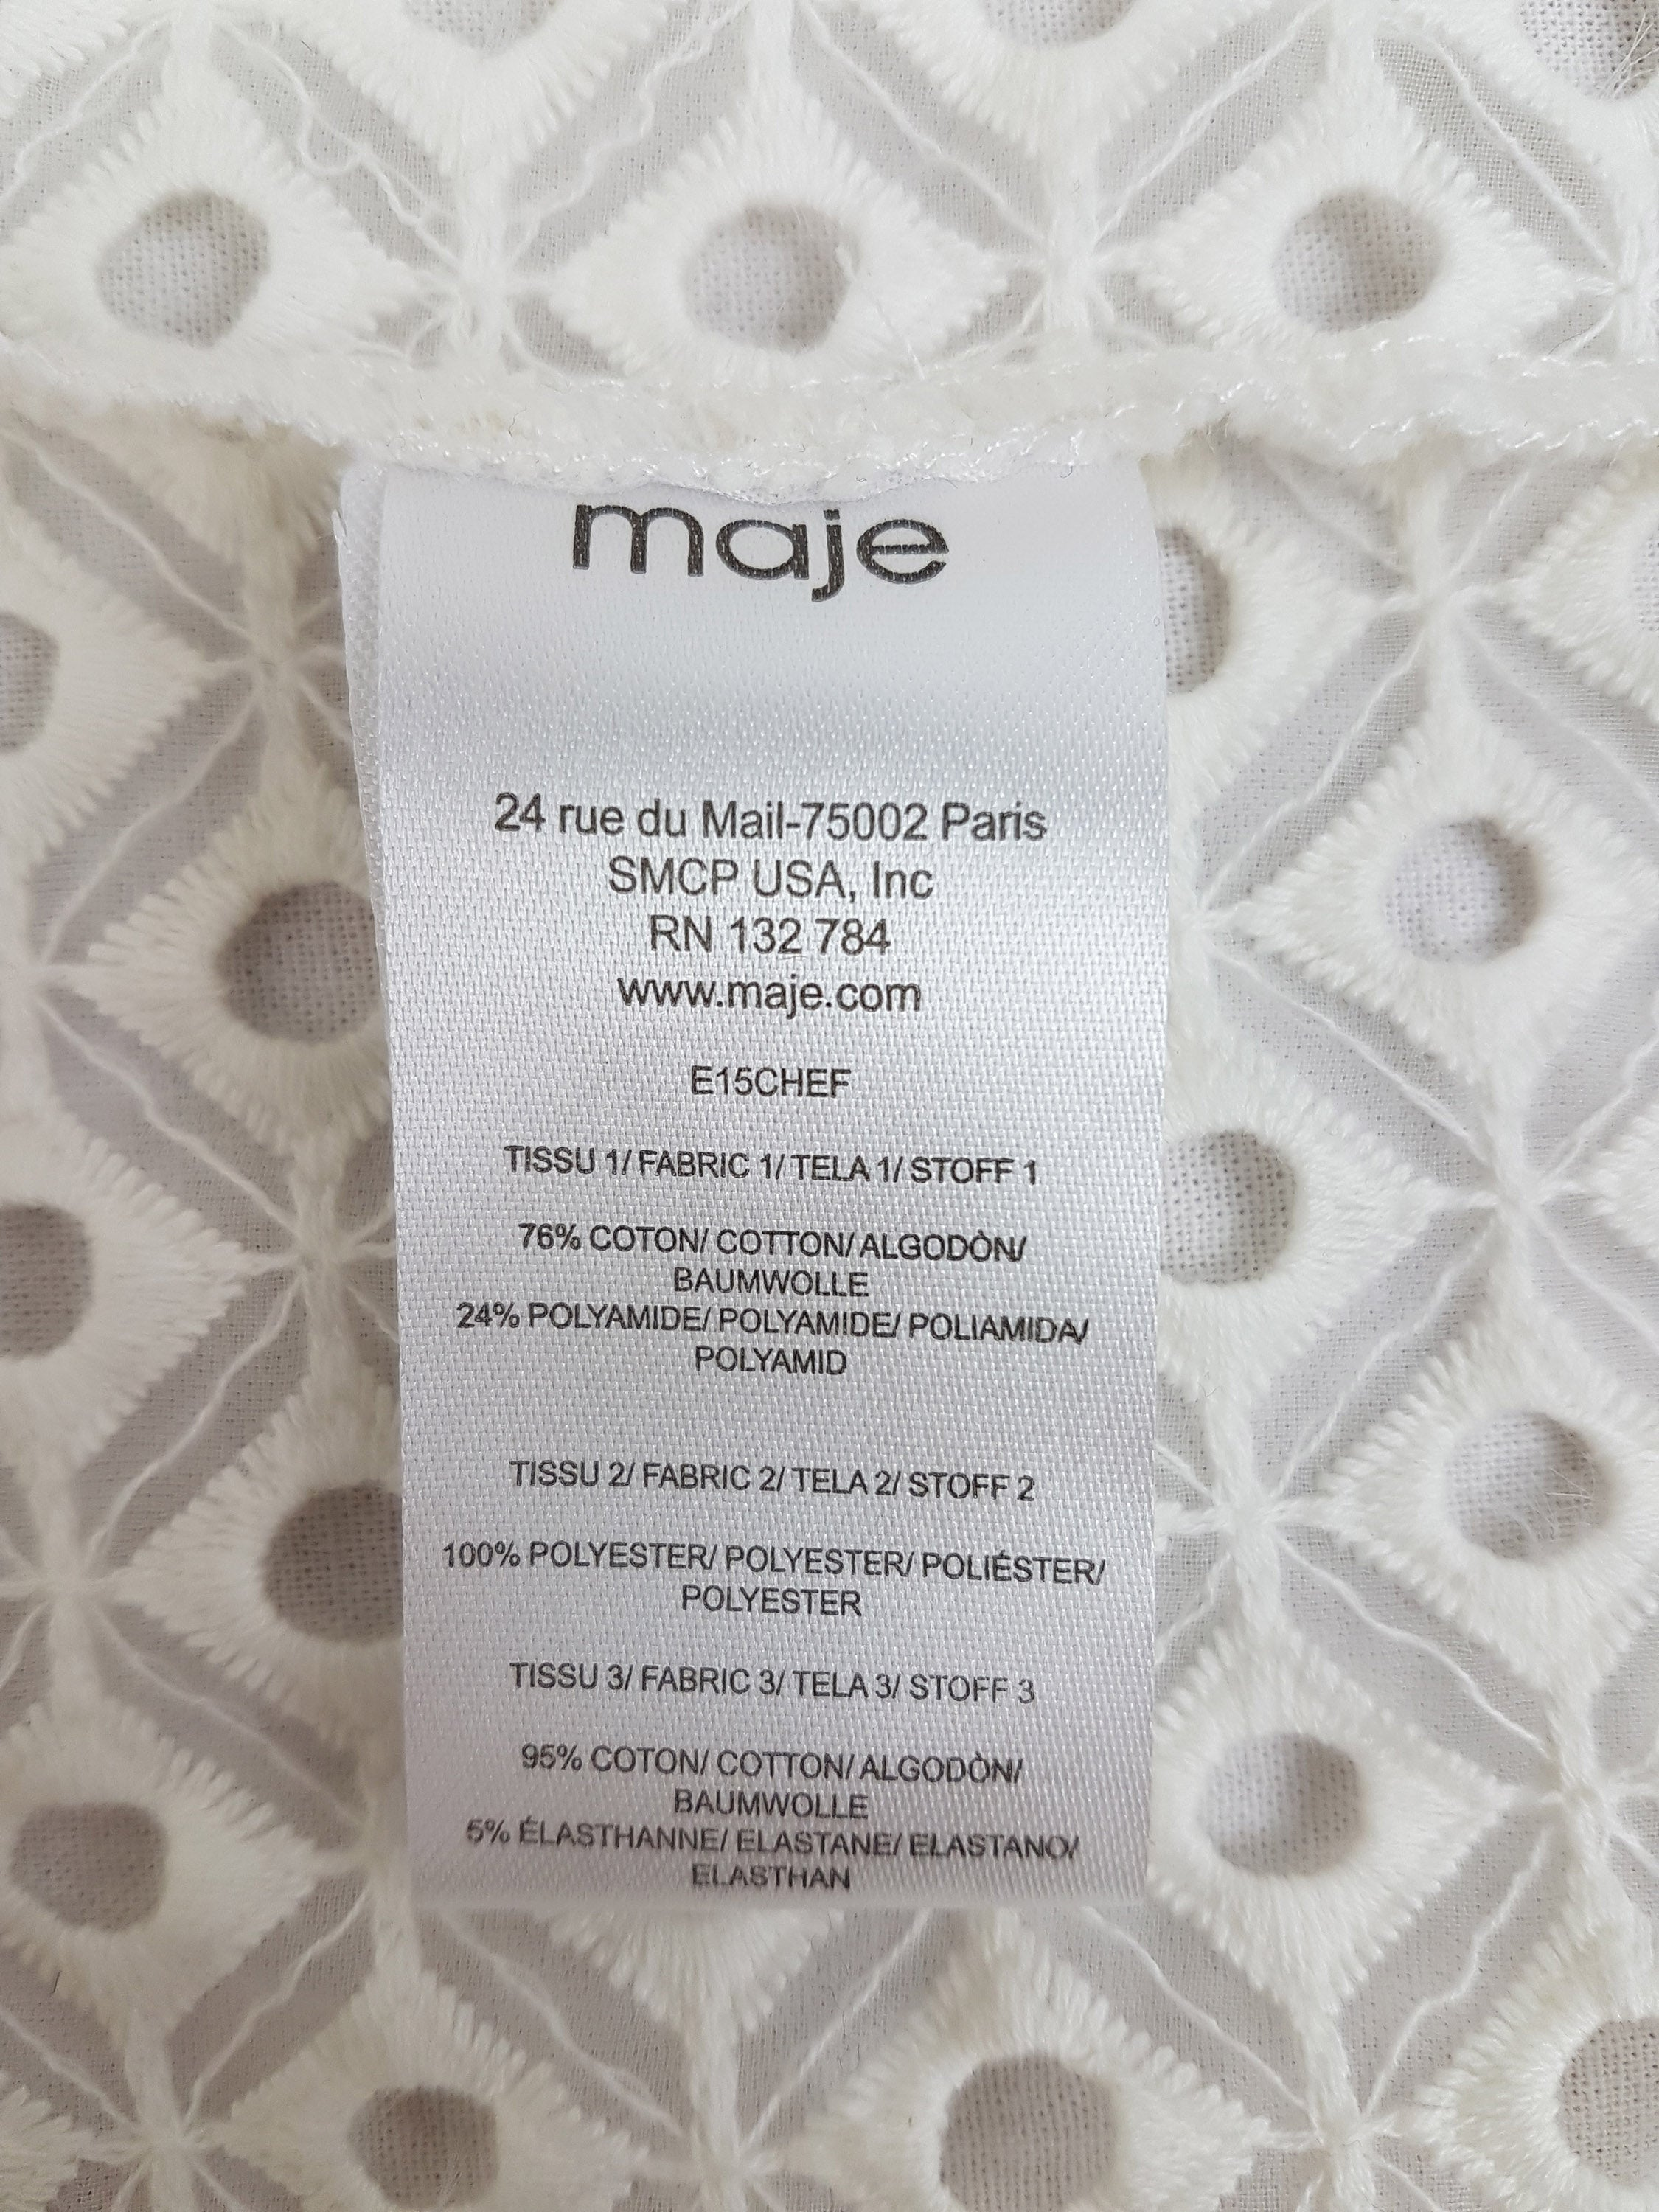 Blouse Maje – Boutique Popeline -  Friperie, Seconde main & Consignation - Montréal, Plateau Mont-Royal